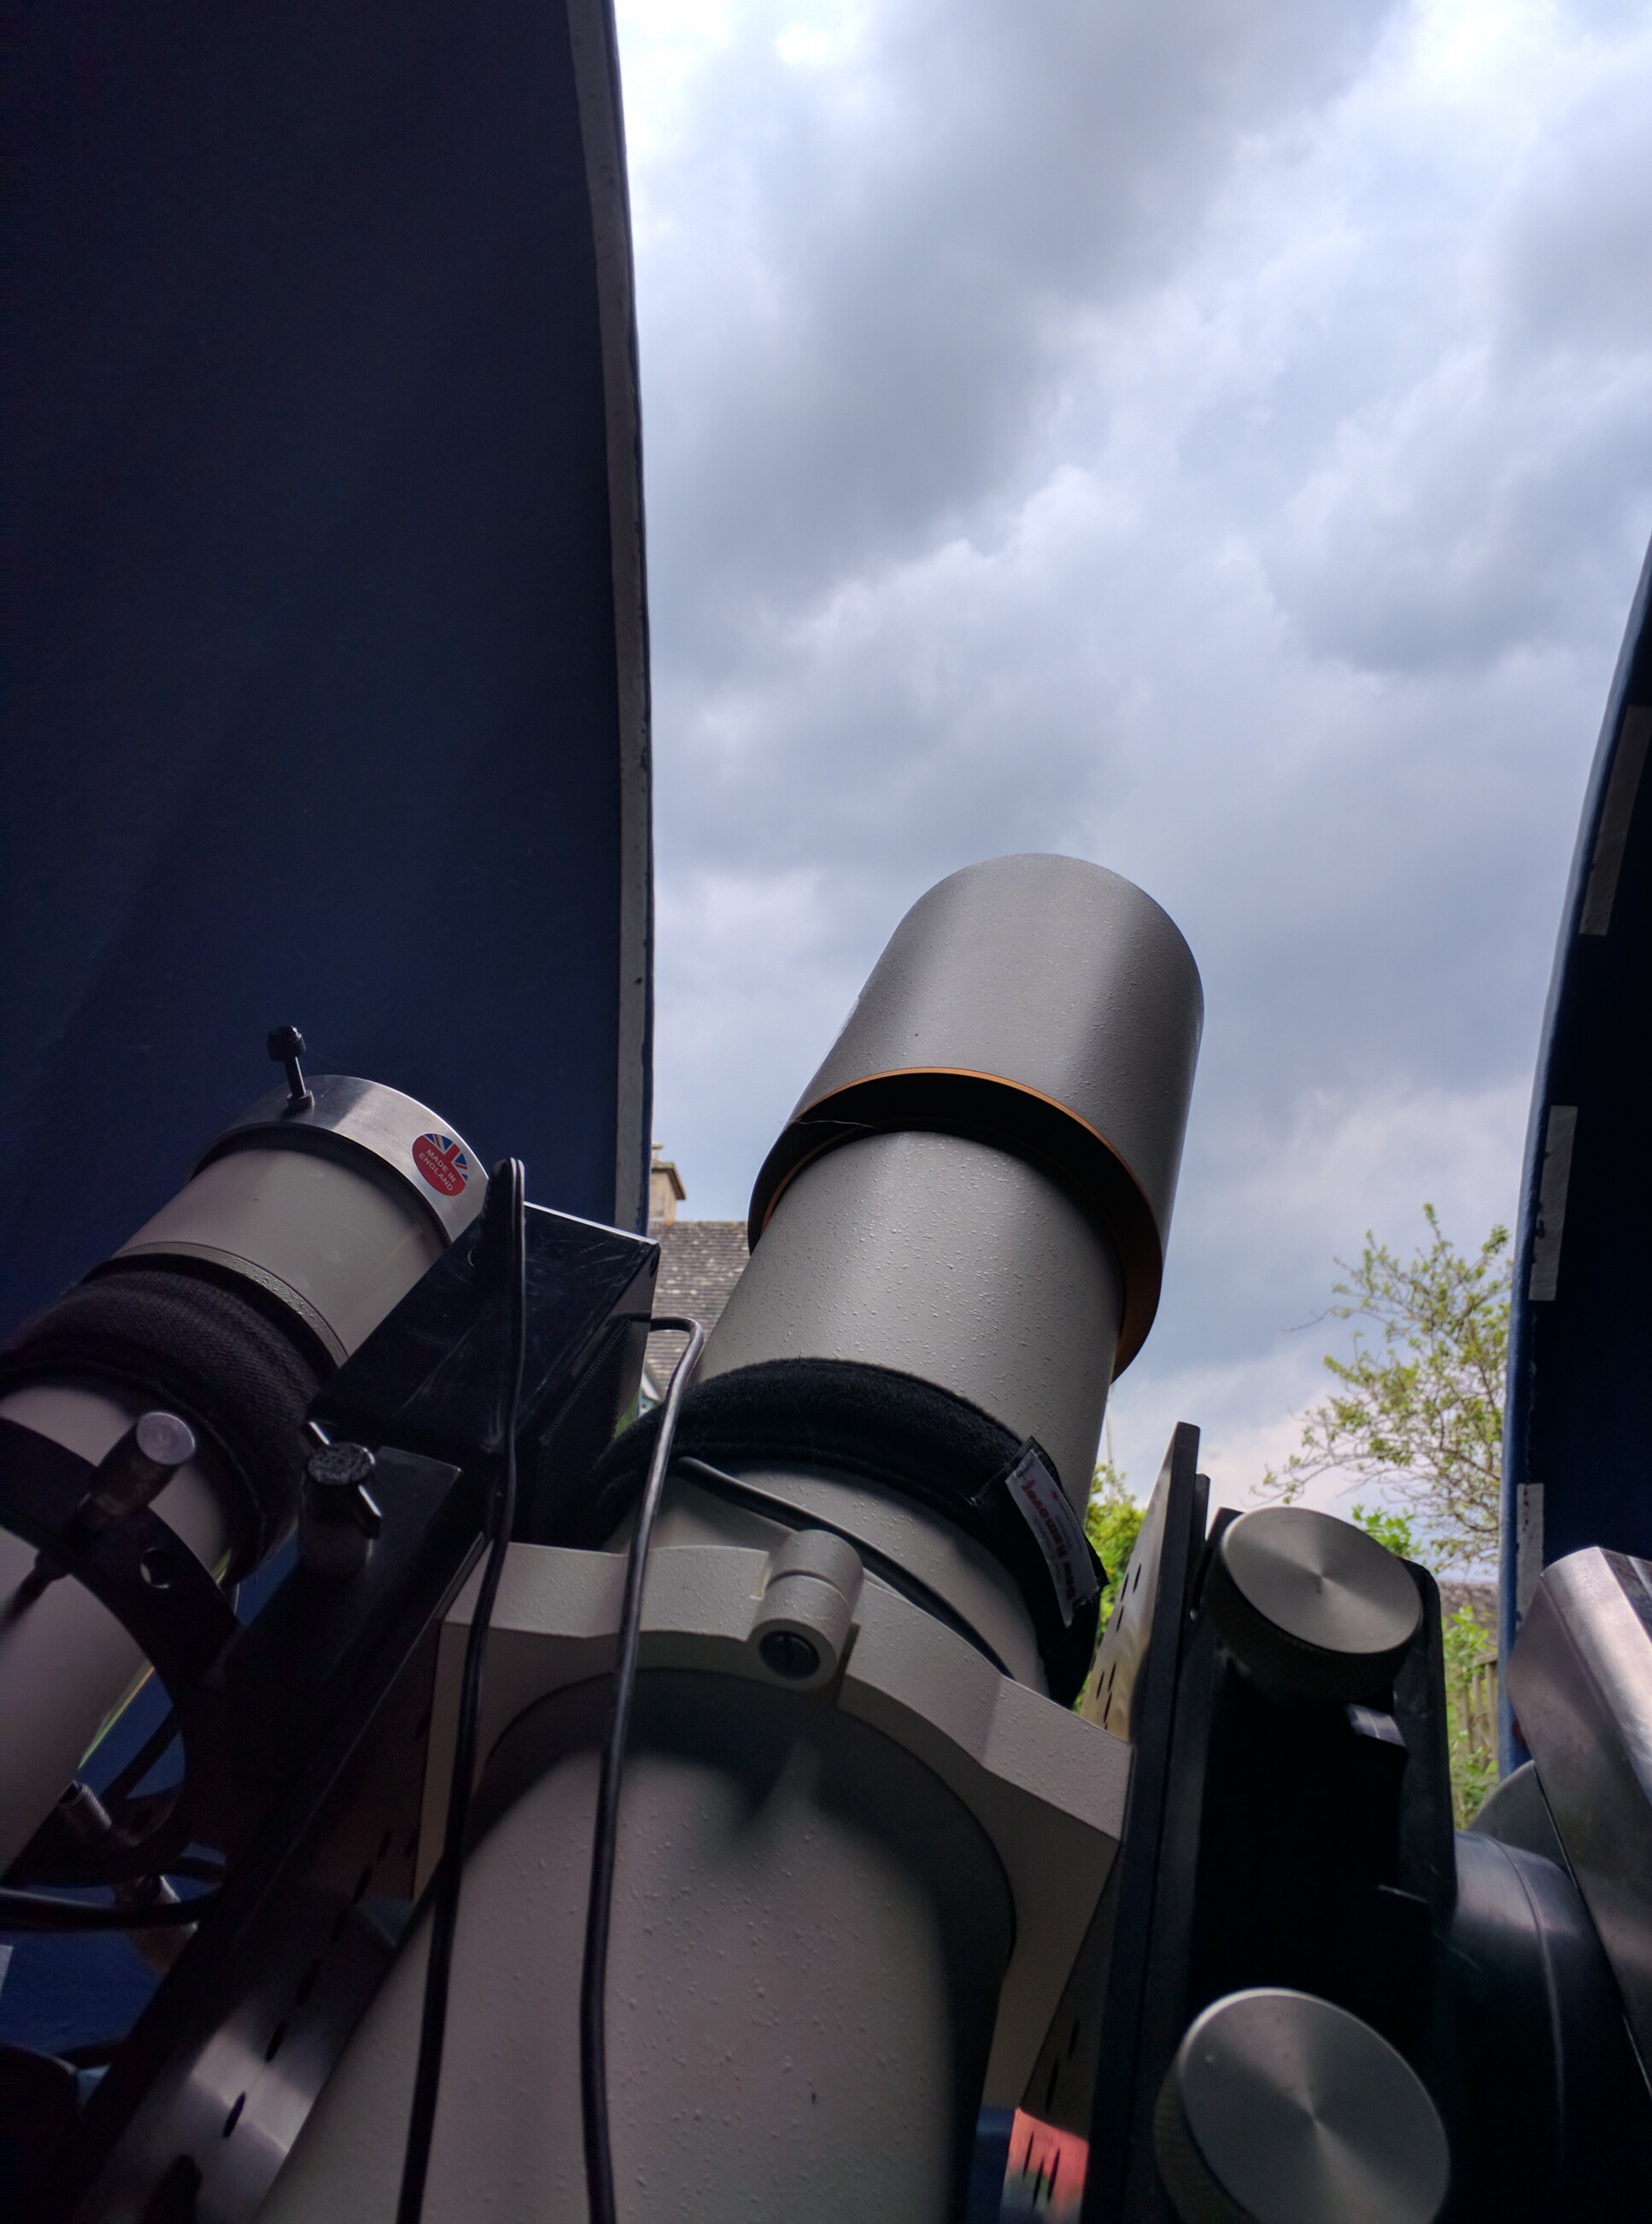 Clouded out for the Transit of Mercury...